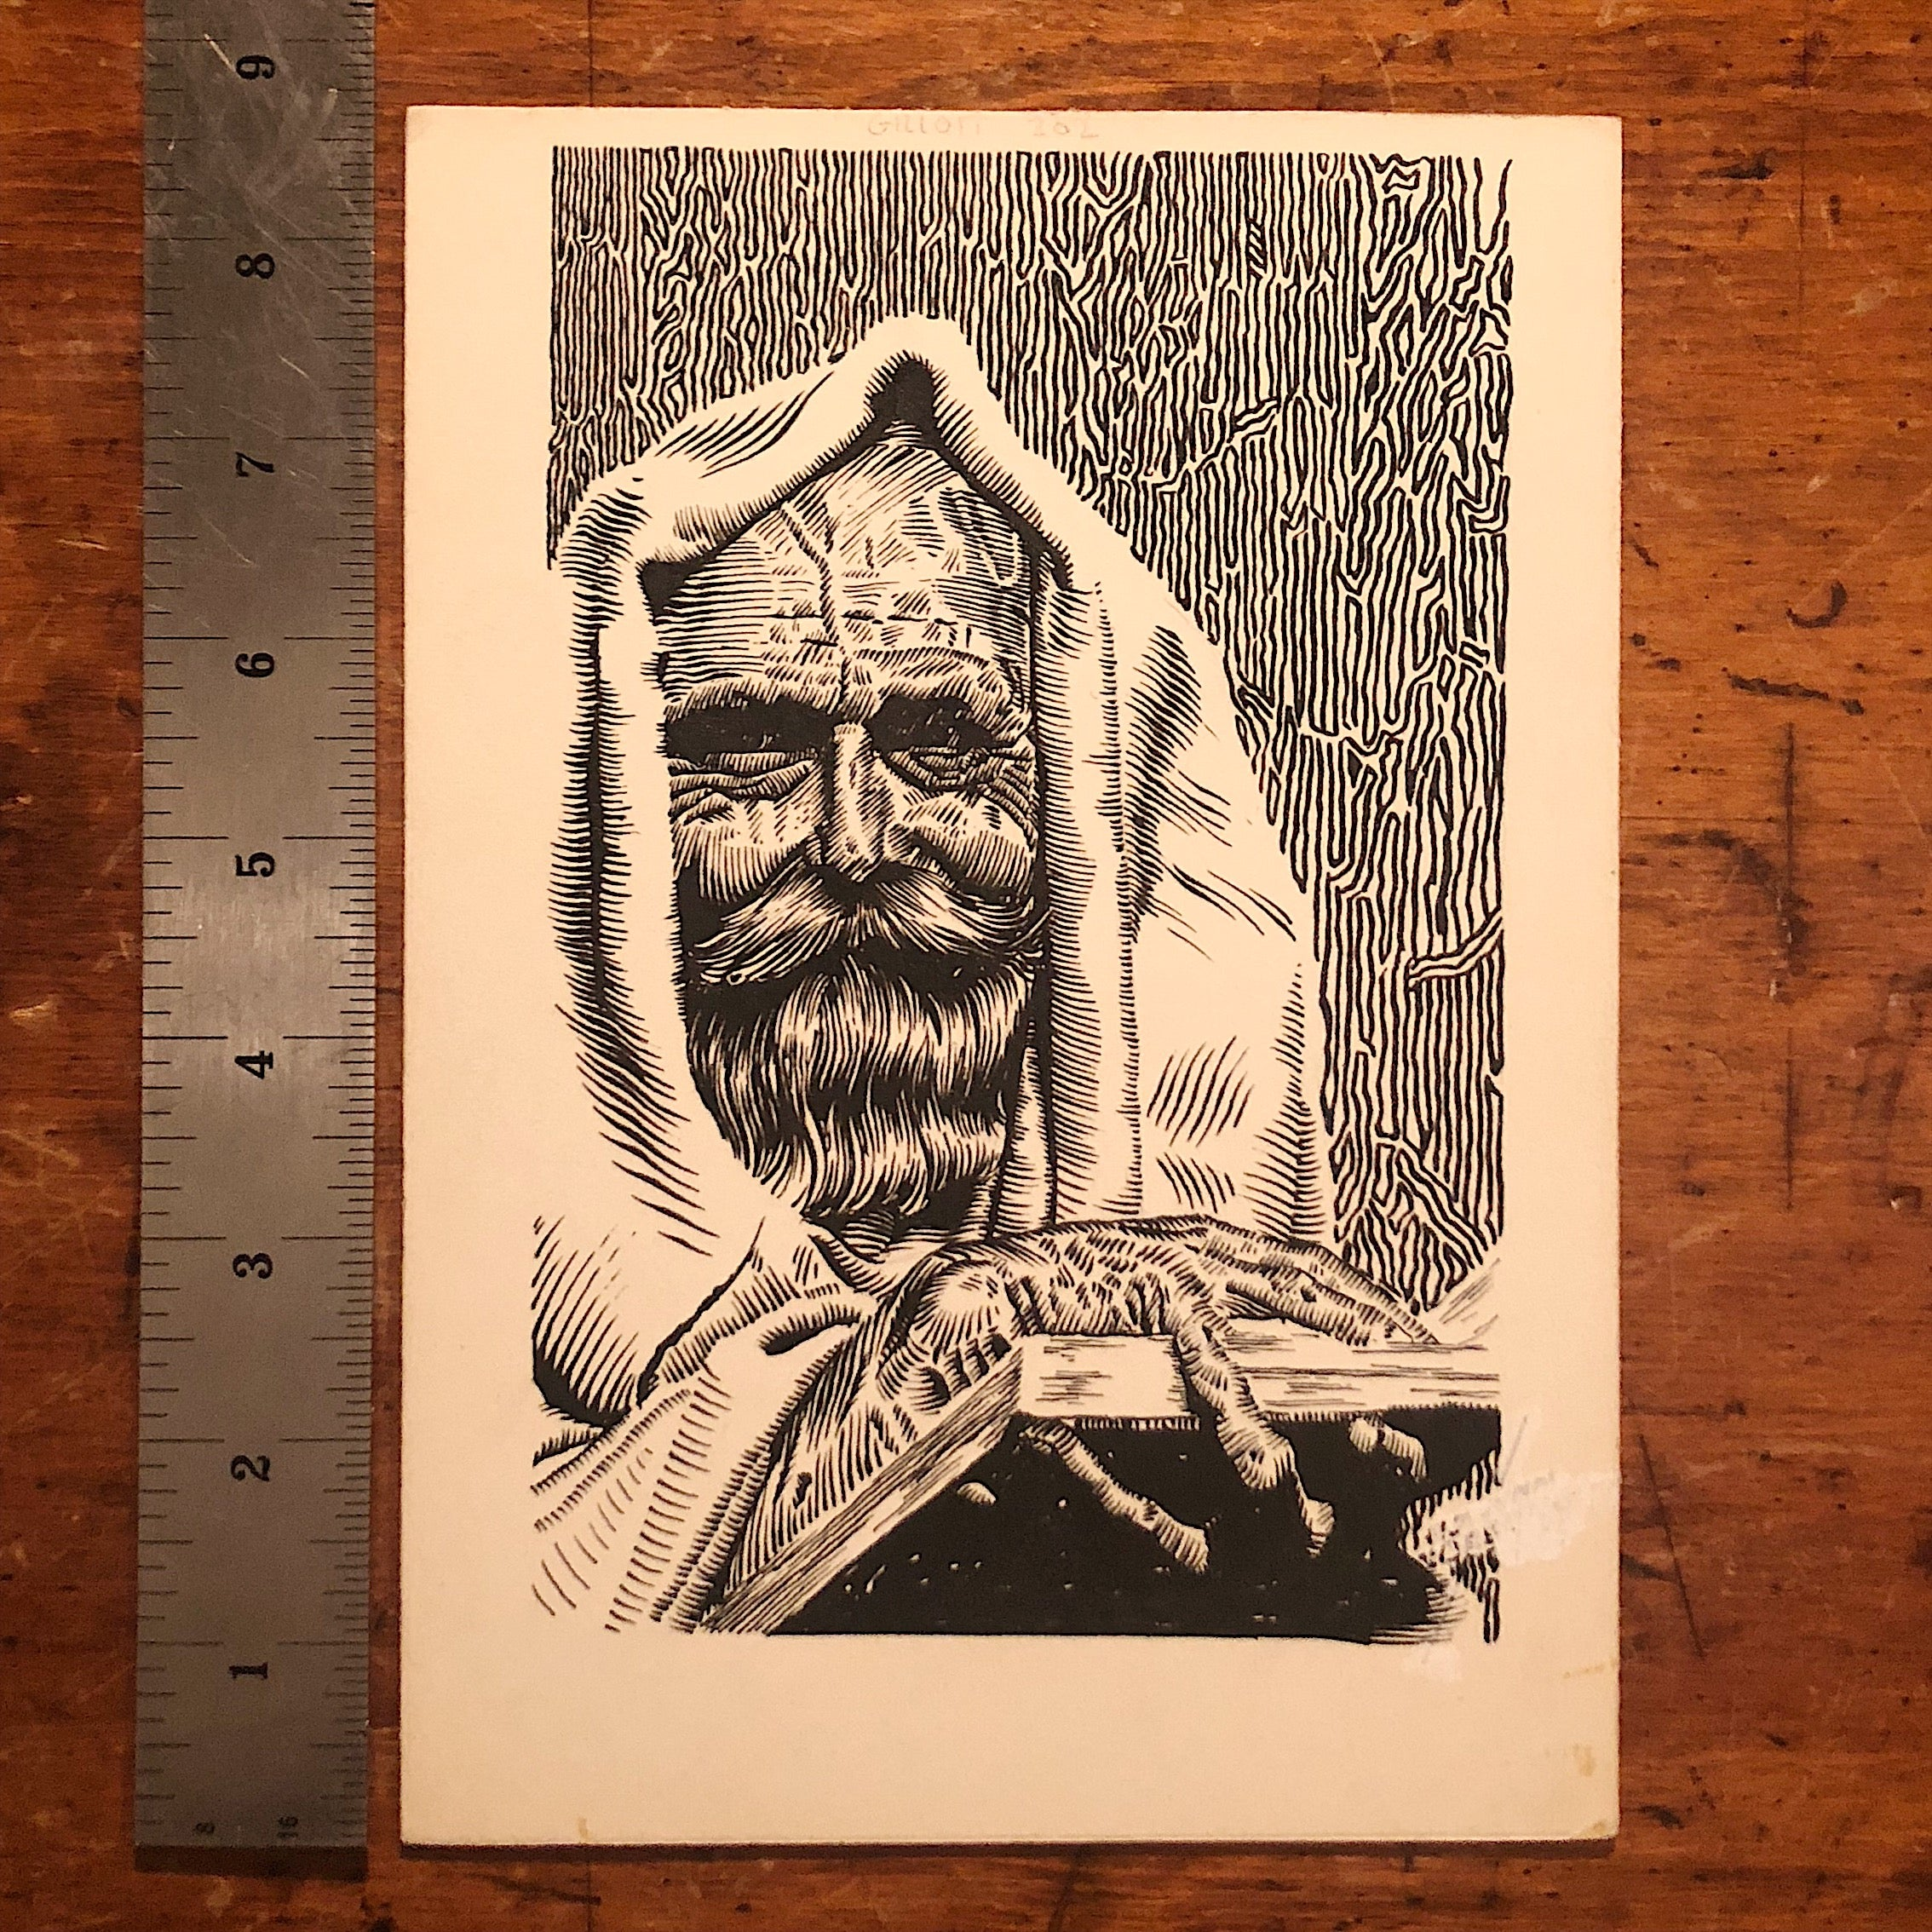 Vintage Illustration Art of Man in Cloak with Creepy Fingers - 1958 -  Illegible Signature